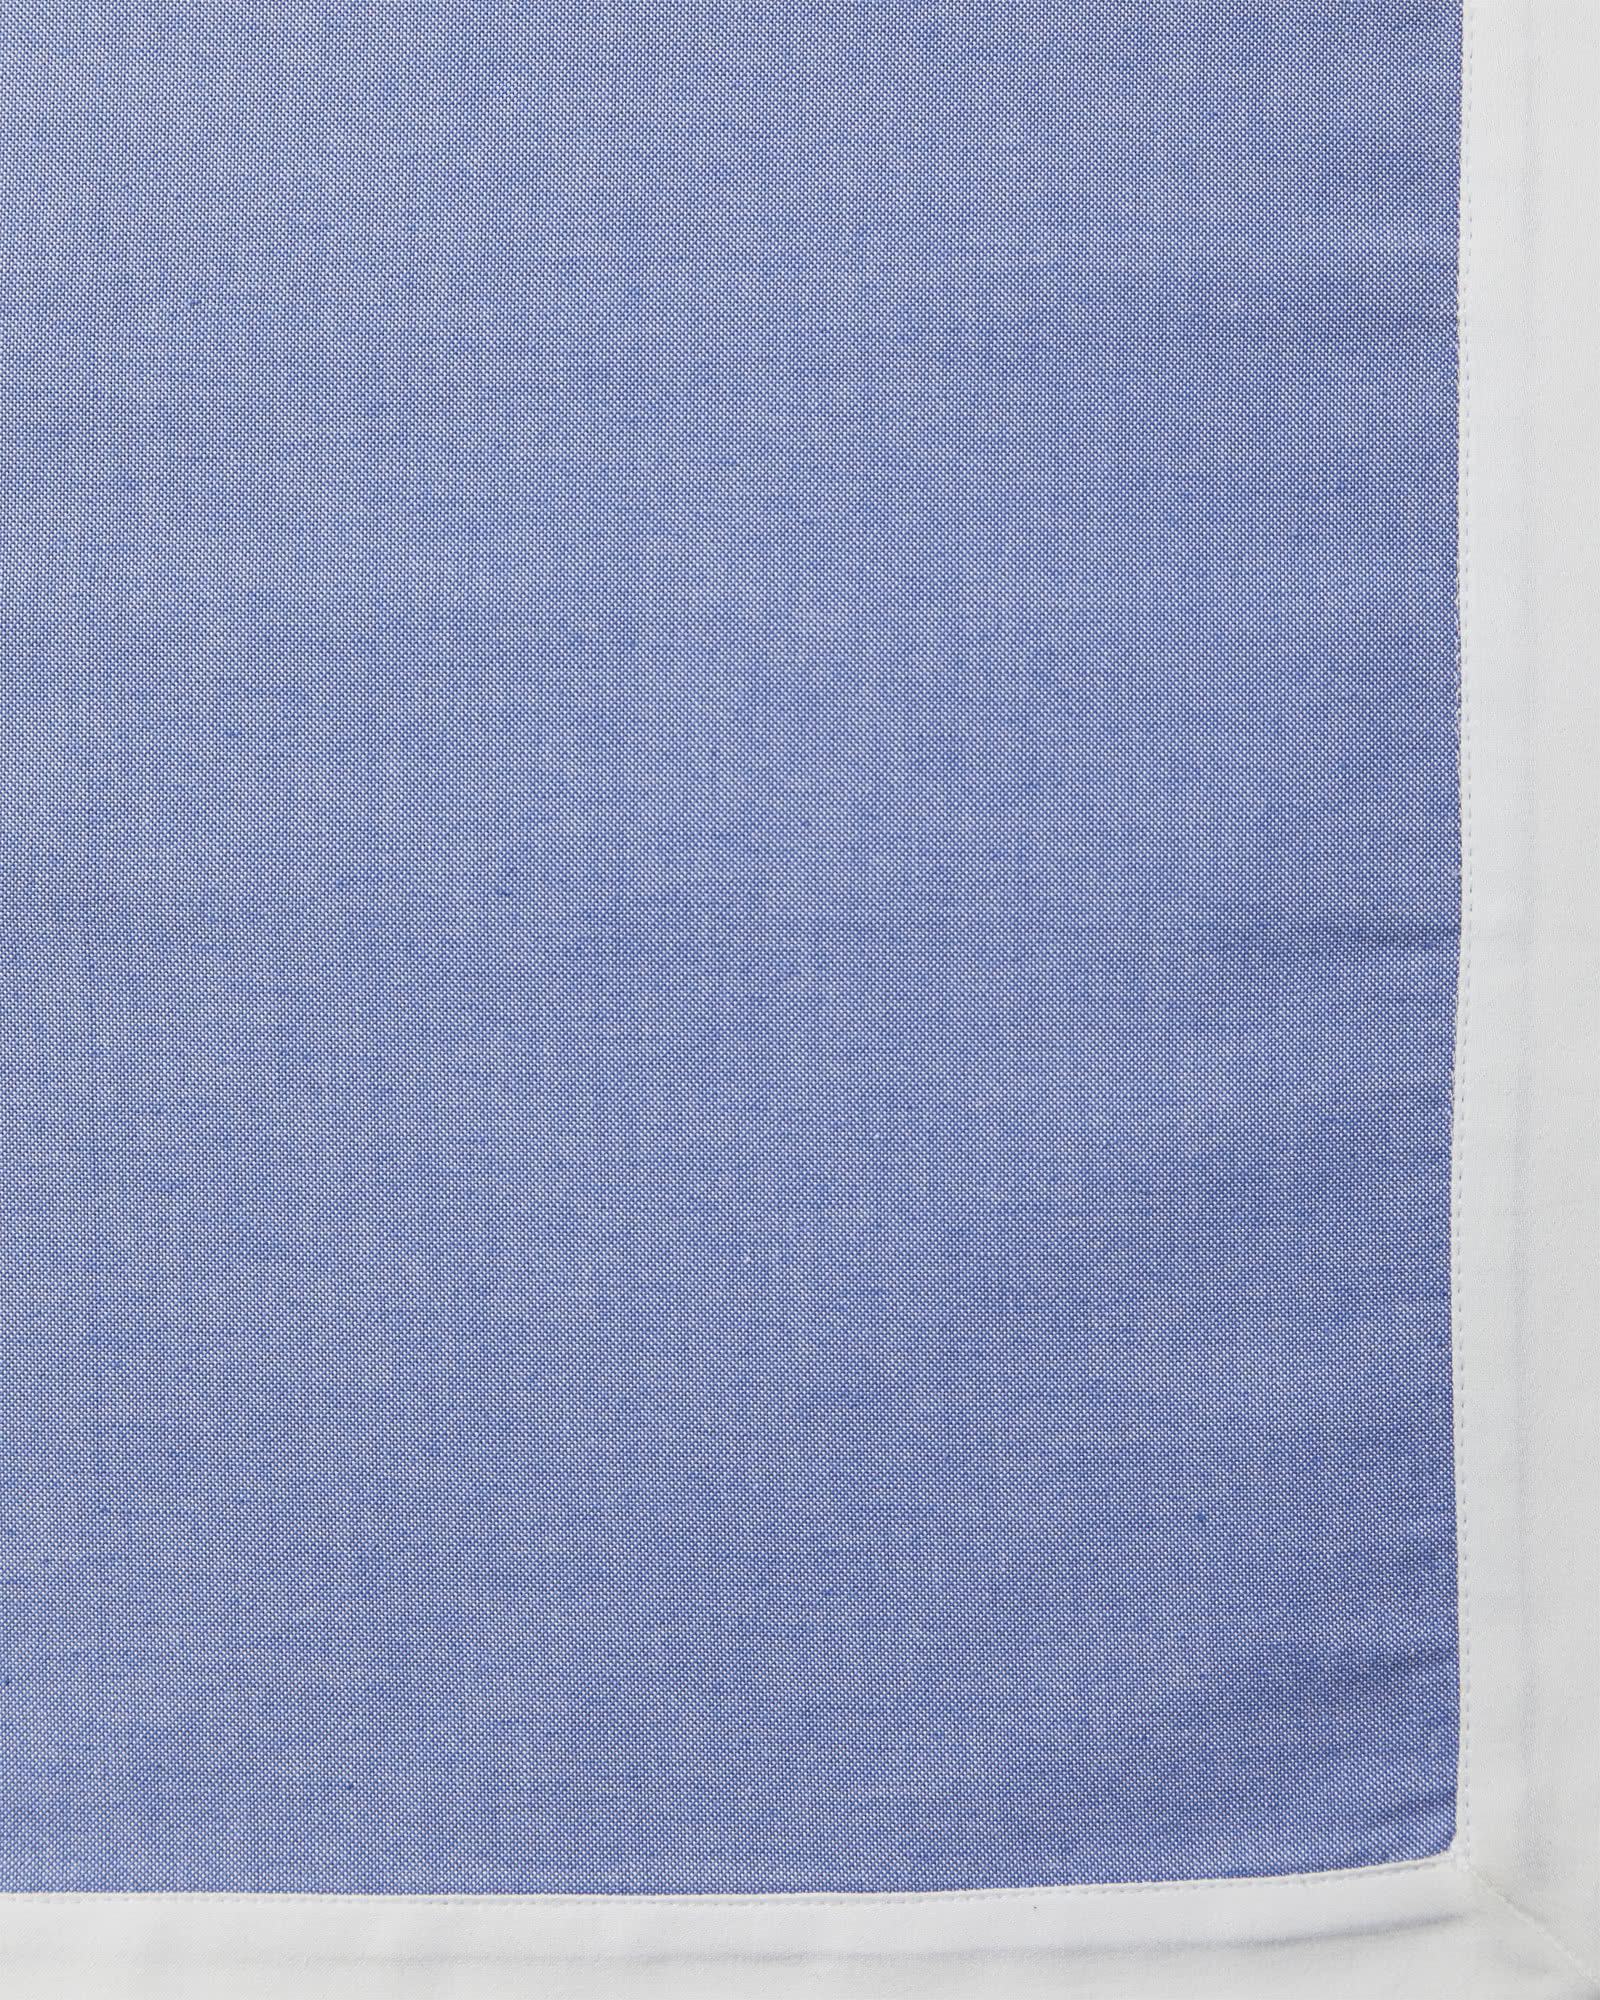 Wainscott Oxford Weave Bedding Swatch, Chambray